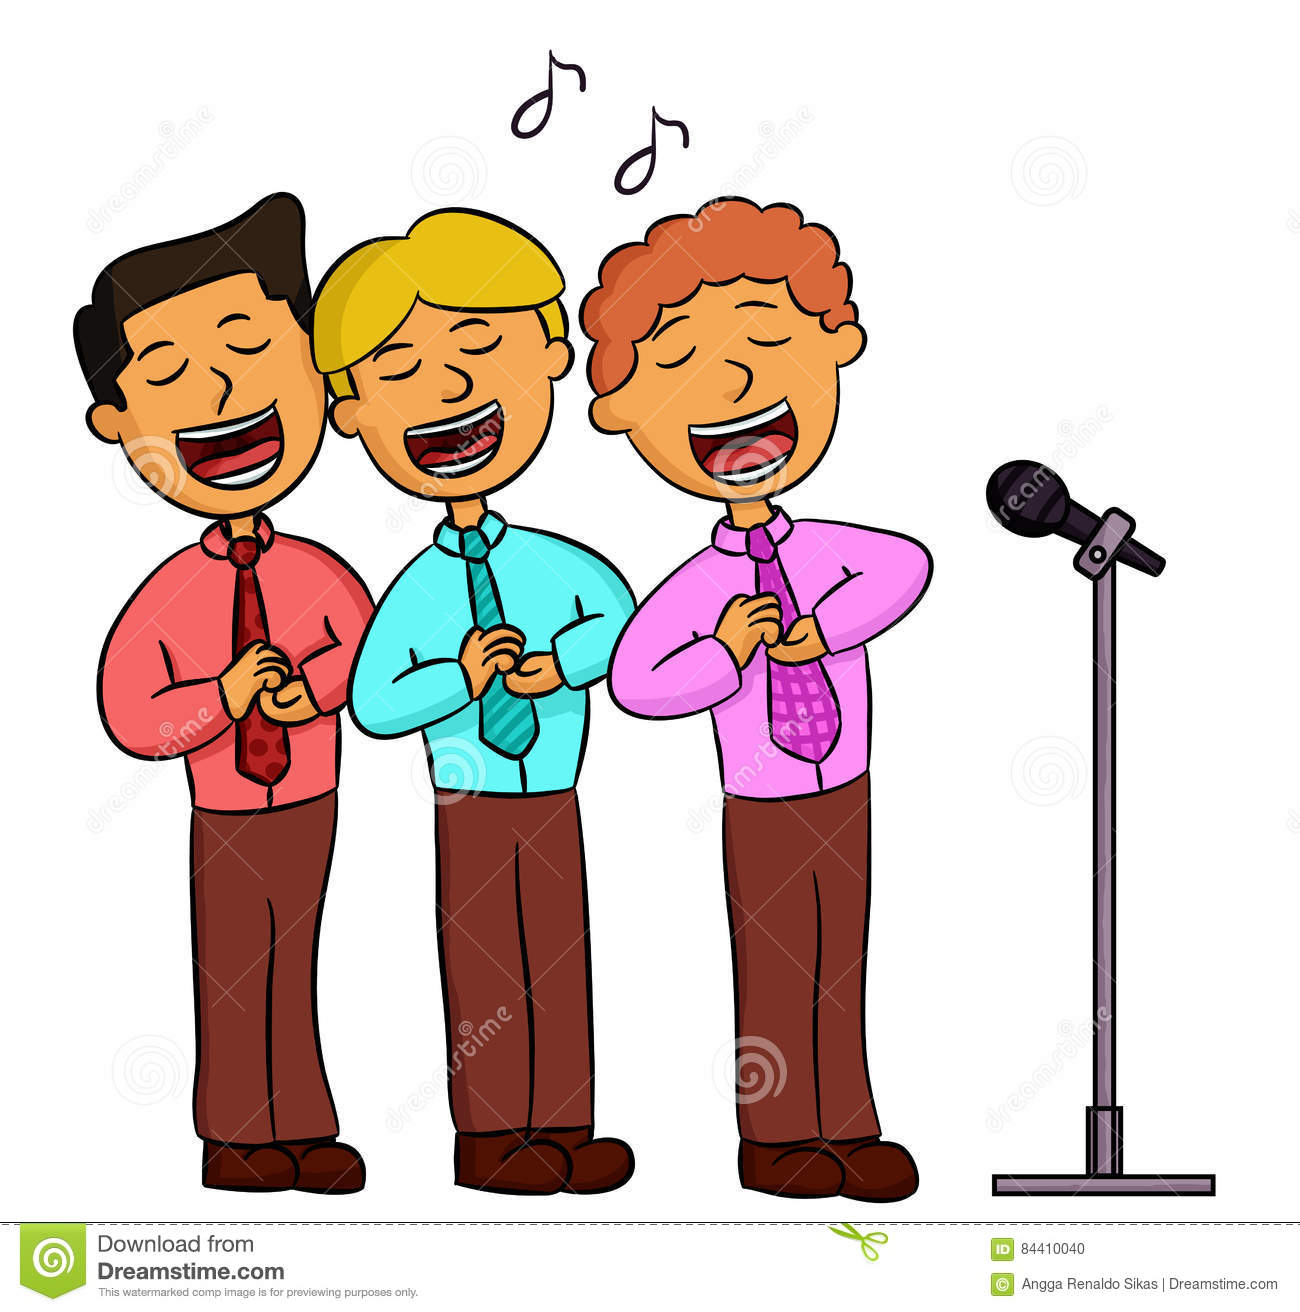 Animated people singing